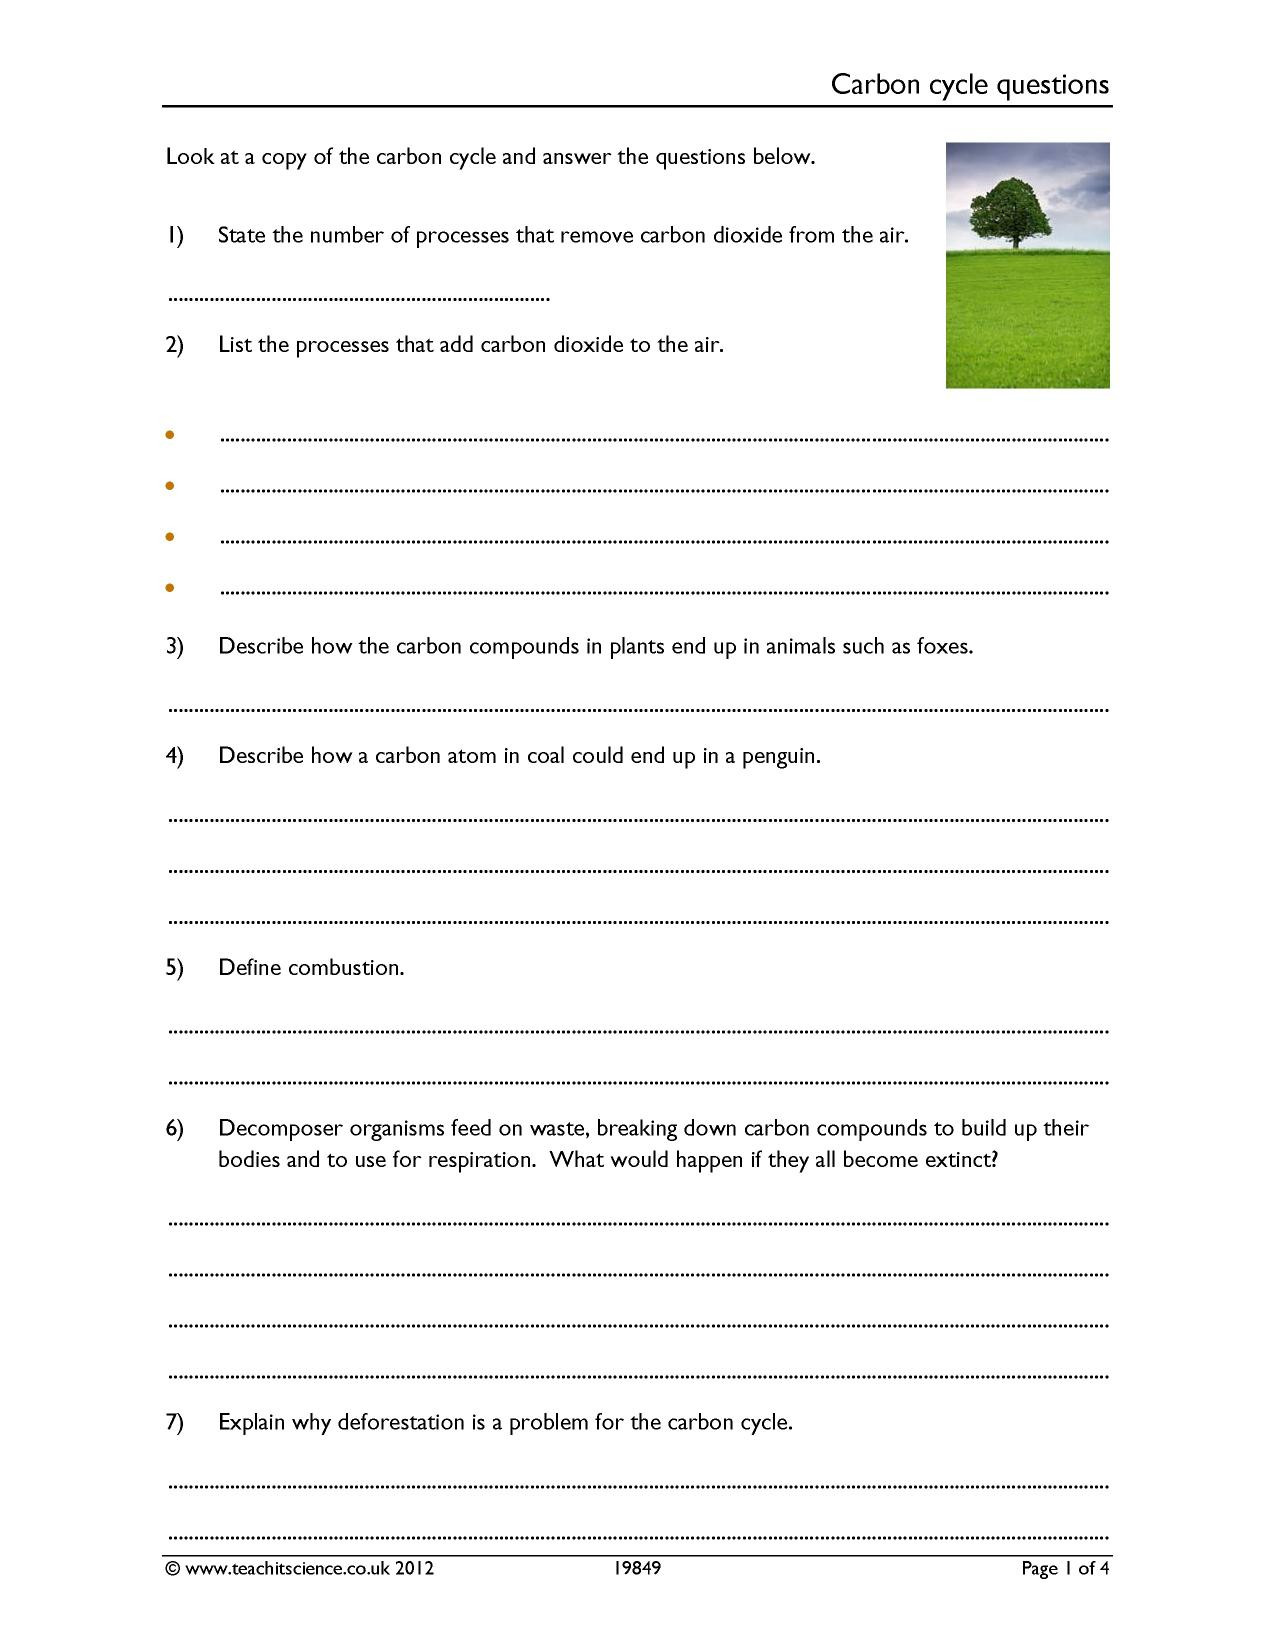 Cycles Worksheet Answer Key Carbon Cycle Questions Worksheet [pdf] Teachit Science